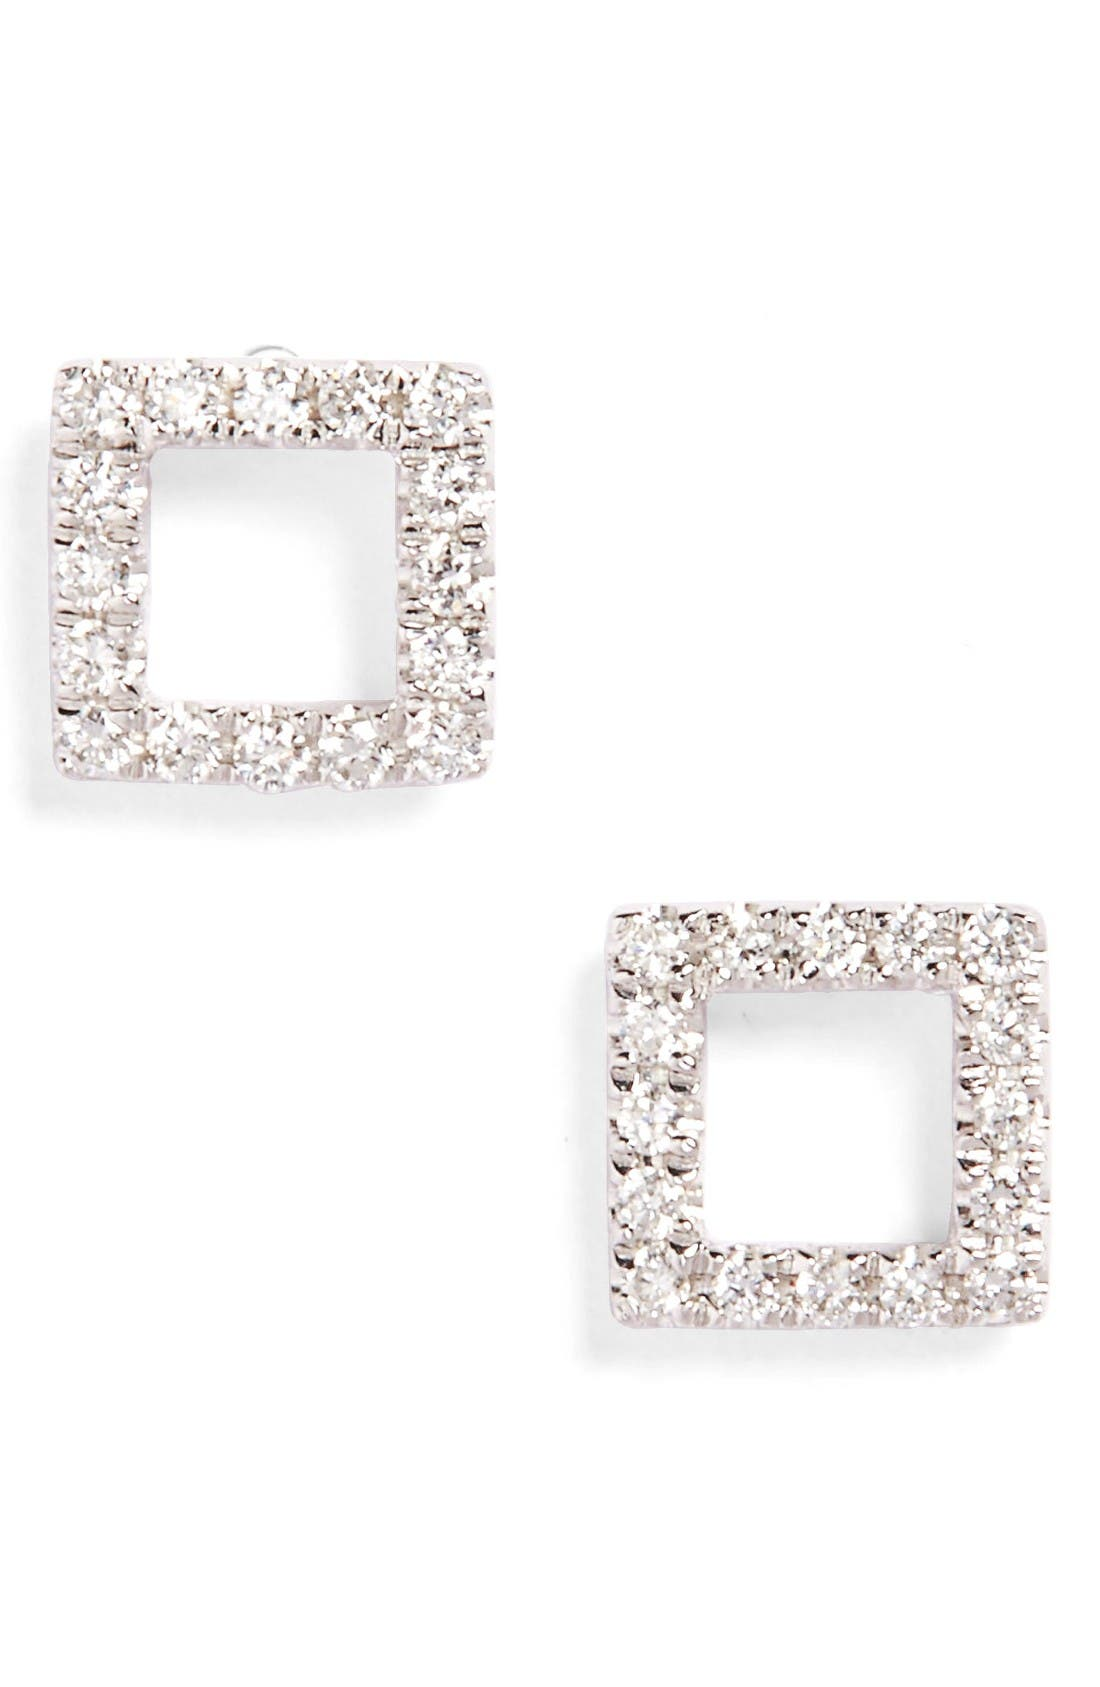 Alternate Image 1 Selected - Bony Levy Aurora Diamond Open Square Stud Earrings (Nordstrom Exclusive)